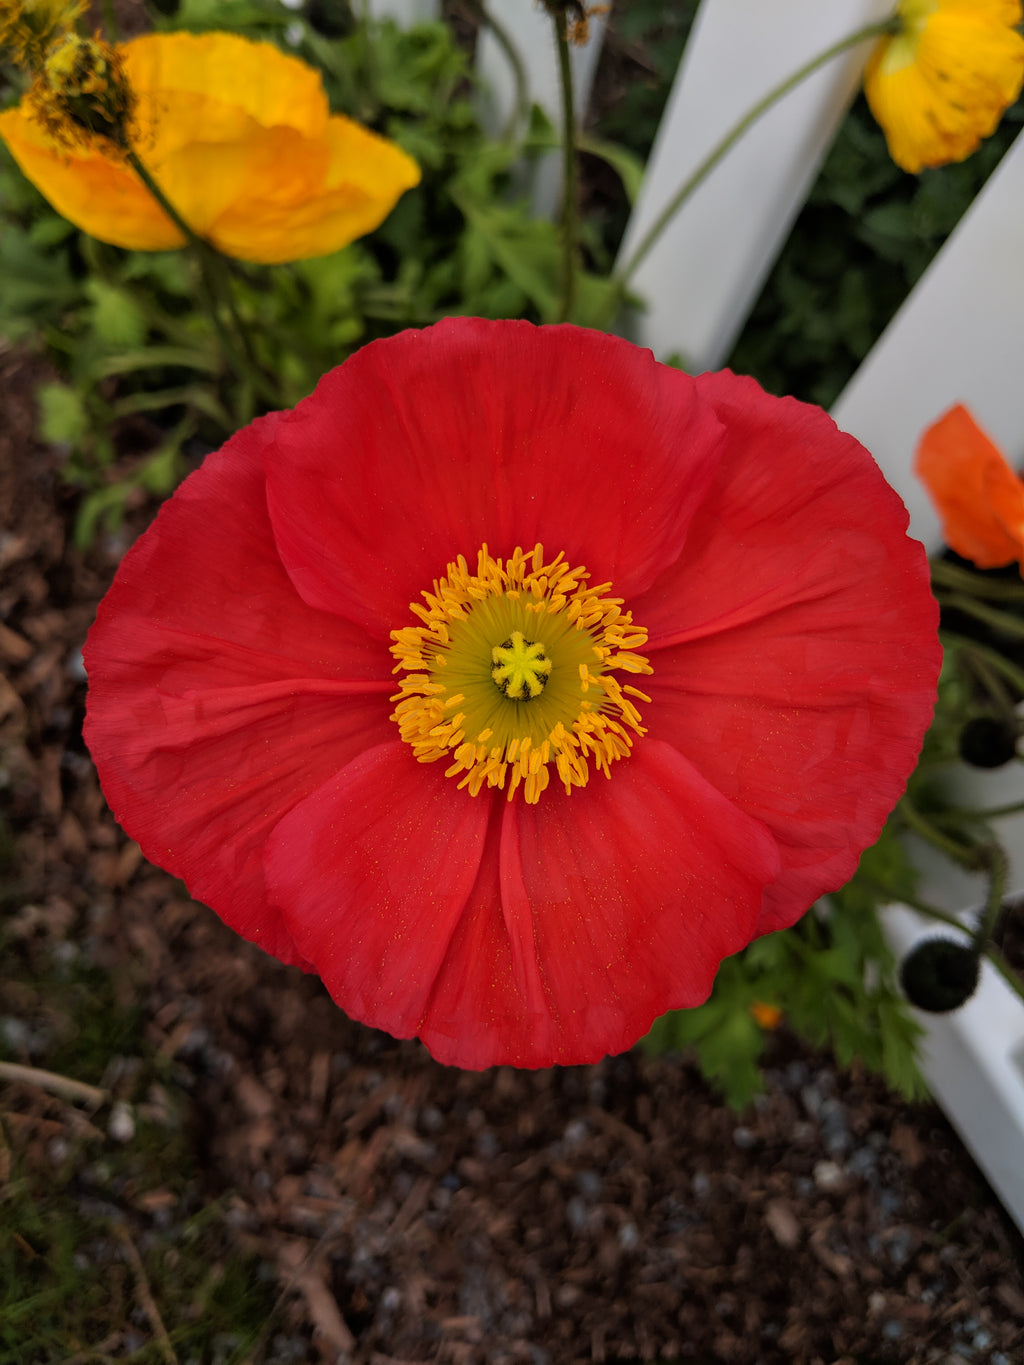 In My Garden: Poppies and Watermelons